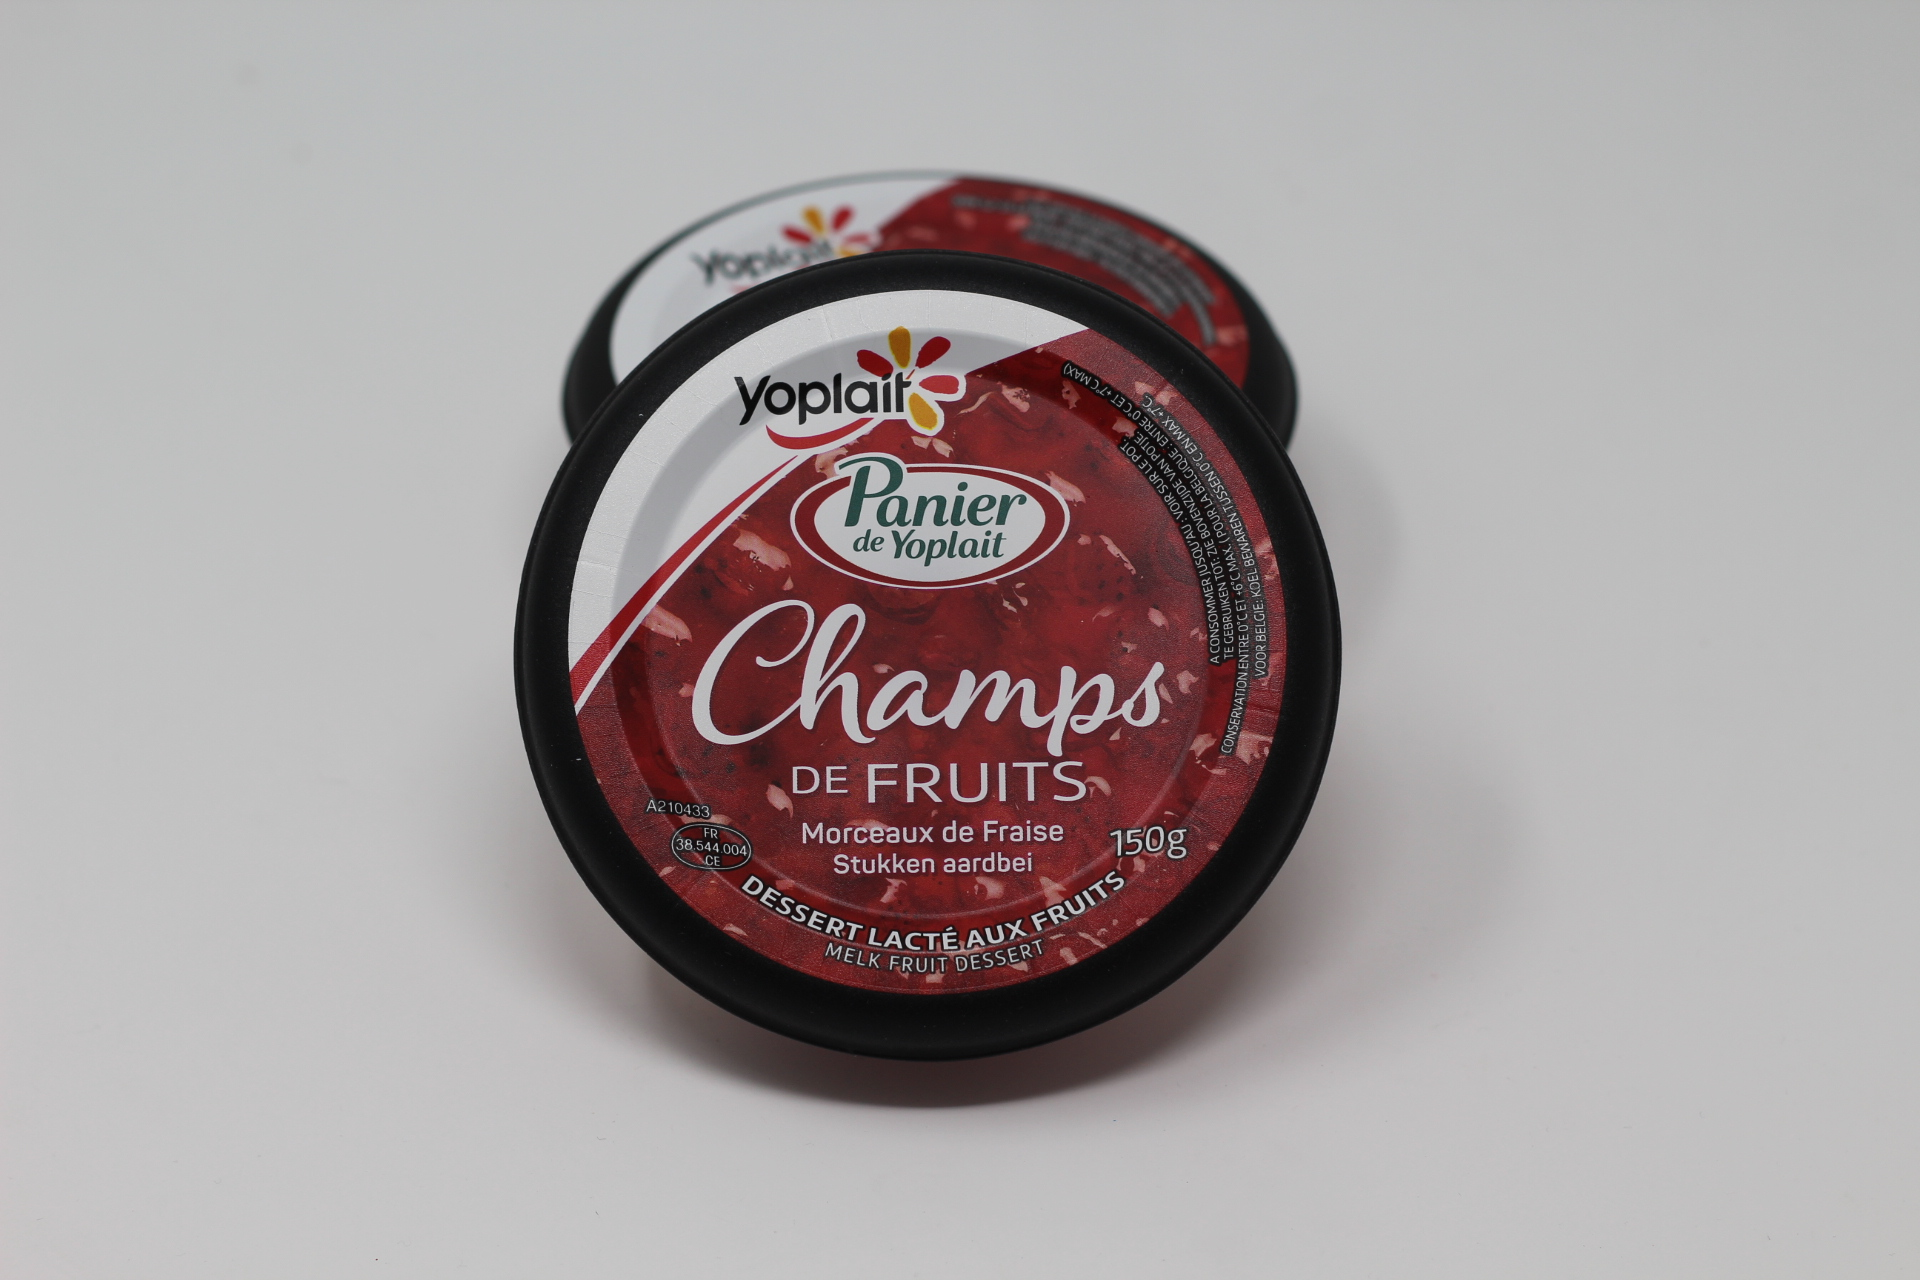 champ de fruits yoplait